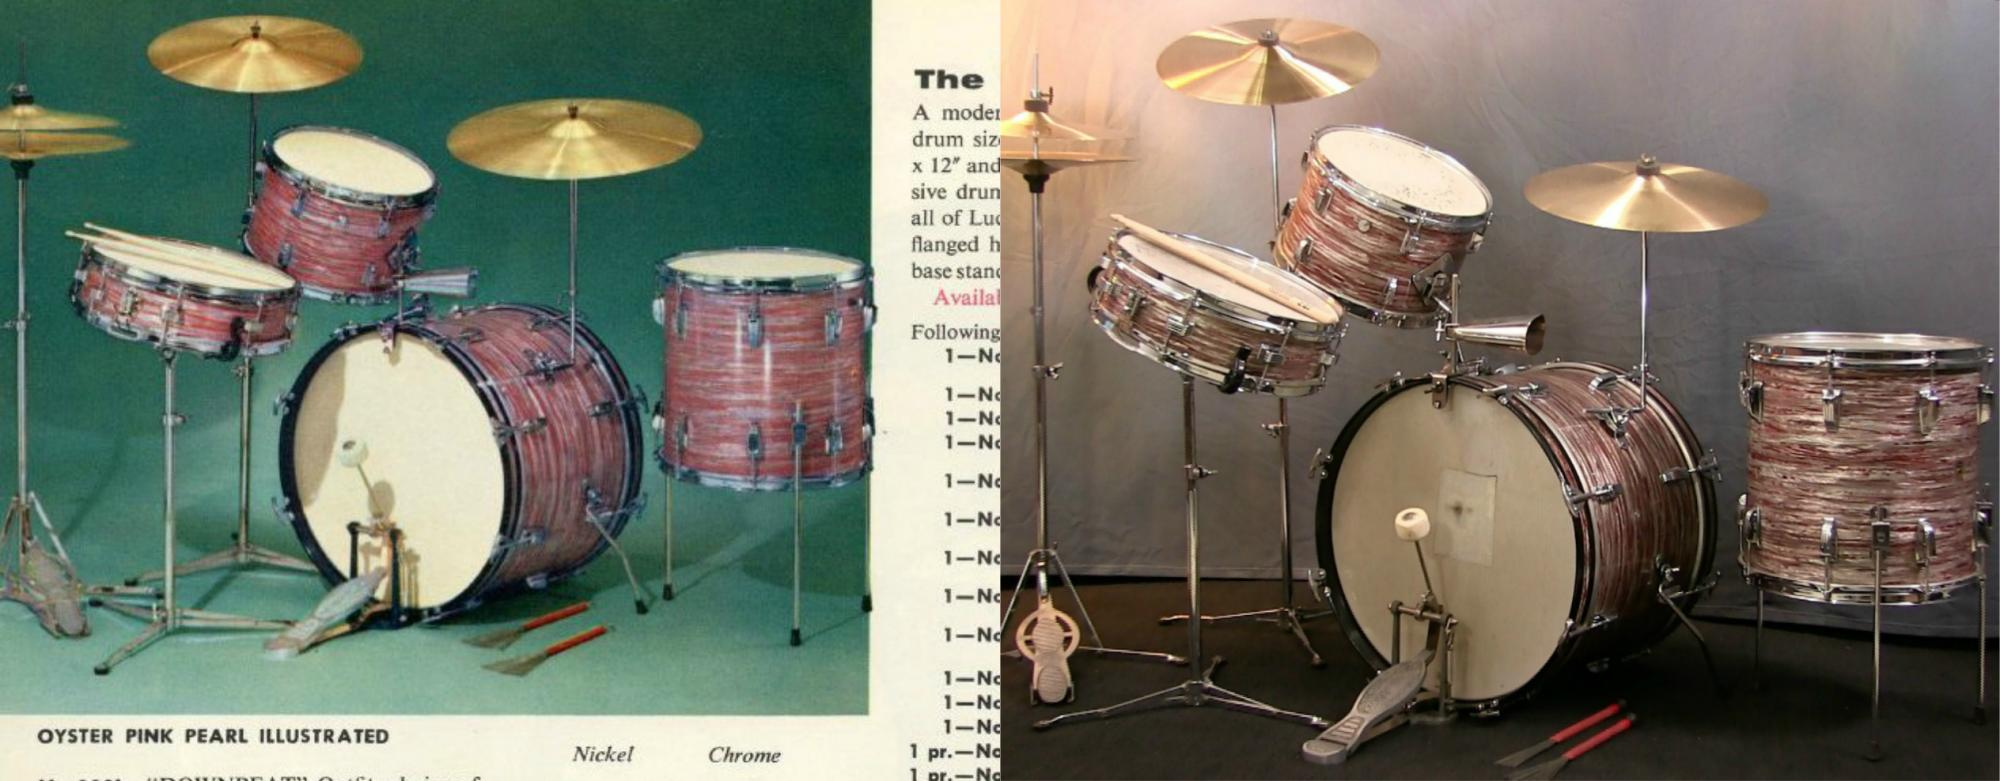 1960 Ludwig Oyster Pink Pearl Downbeat Drum Set